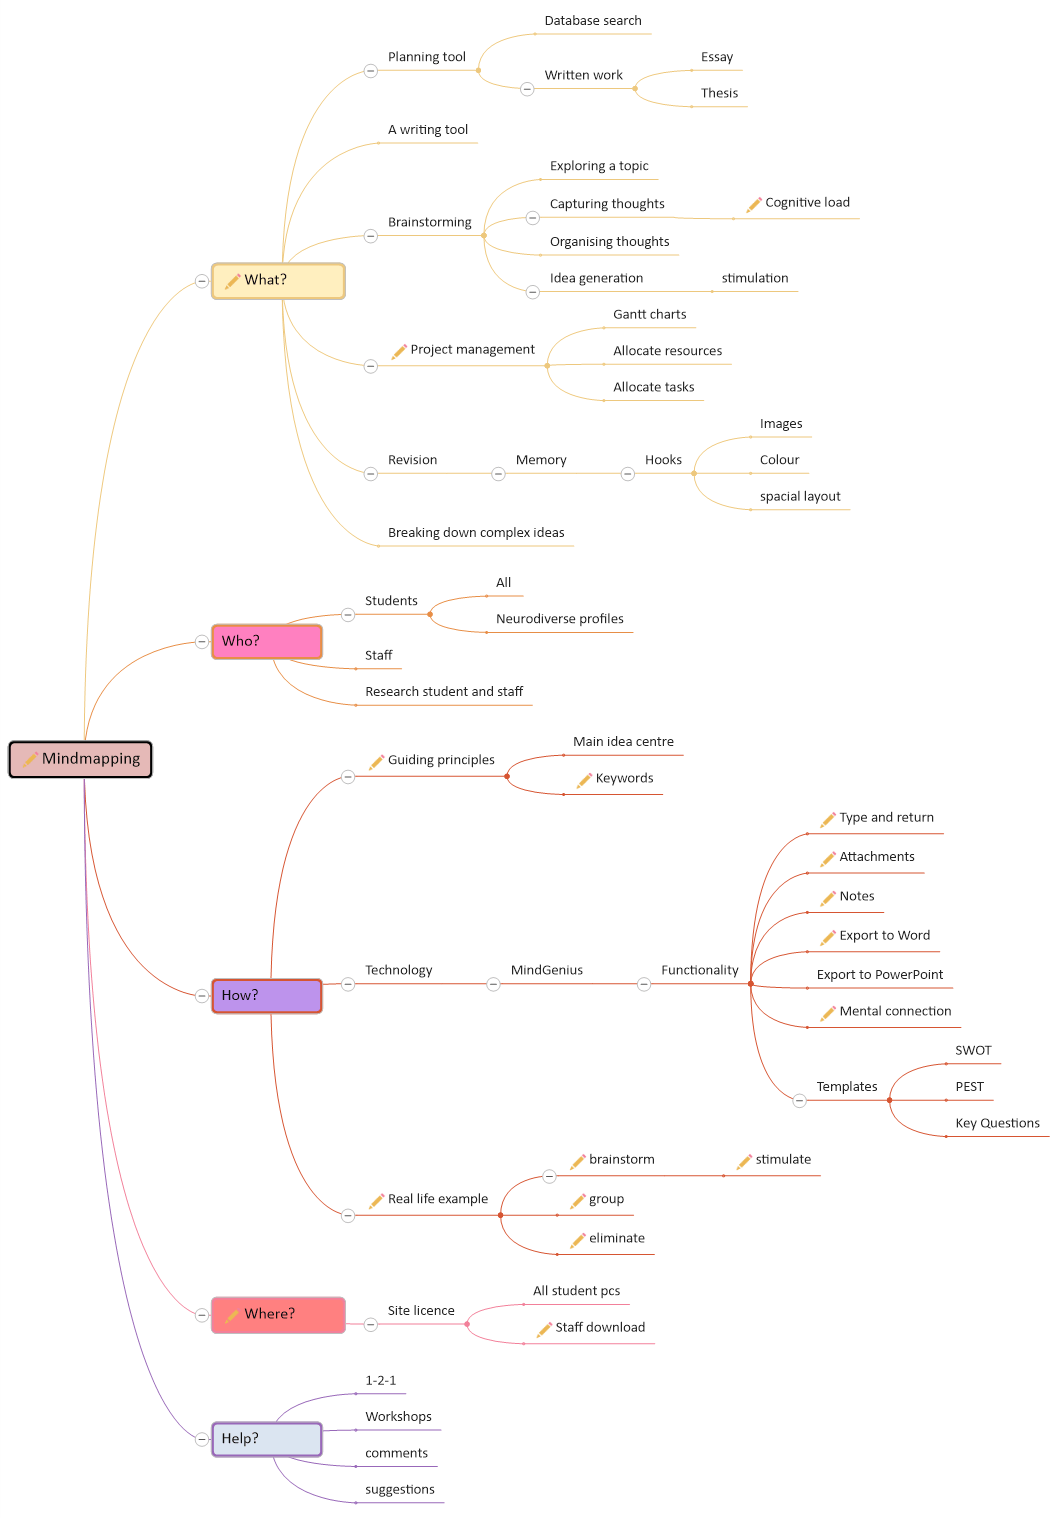 A mindmap about mindmapping with more structure